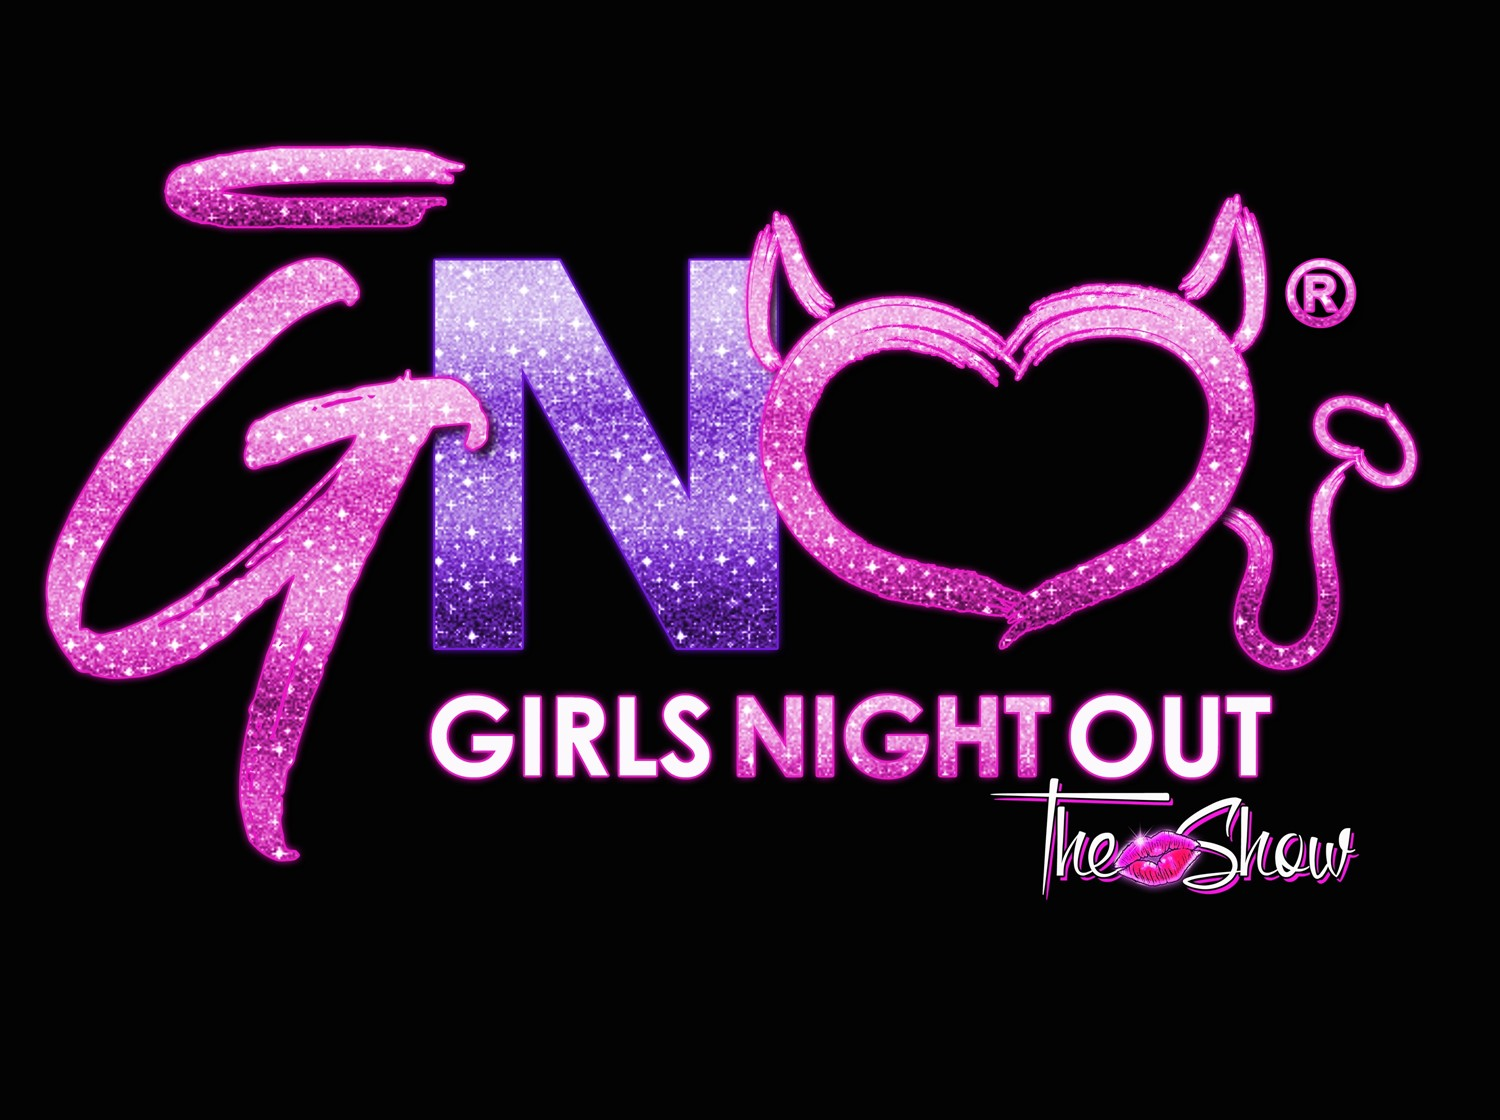 The Ridglea Room (21+) Fort Worth, TX on Mar 26, 20:00@The Ridglea Room - Buy tickets and Get information on Girls Night Out the Show tickets.girlsnightouttheshow.com